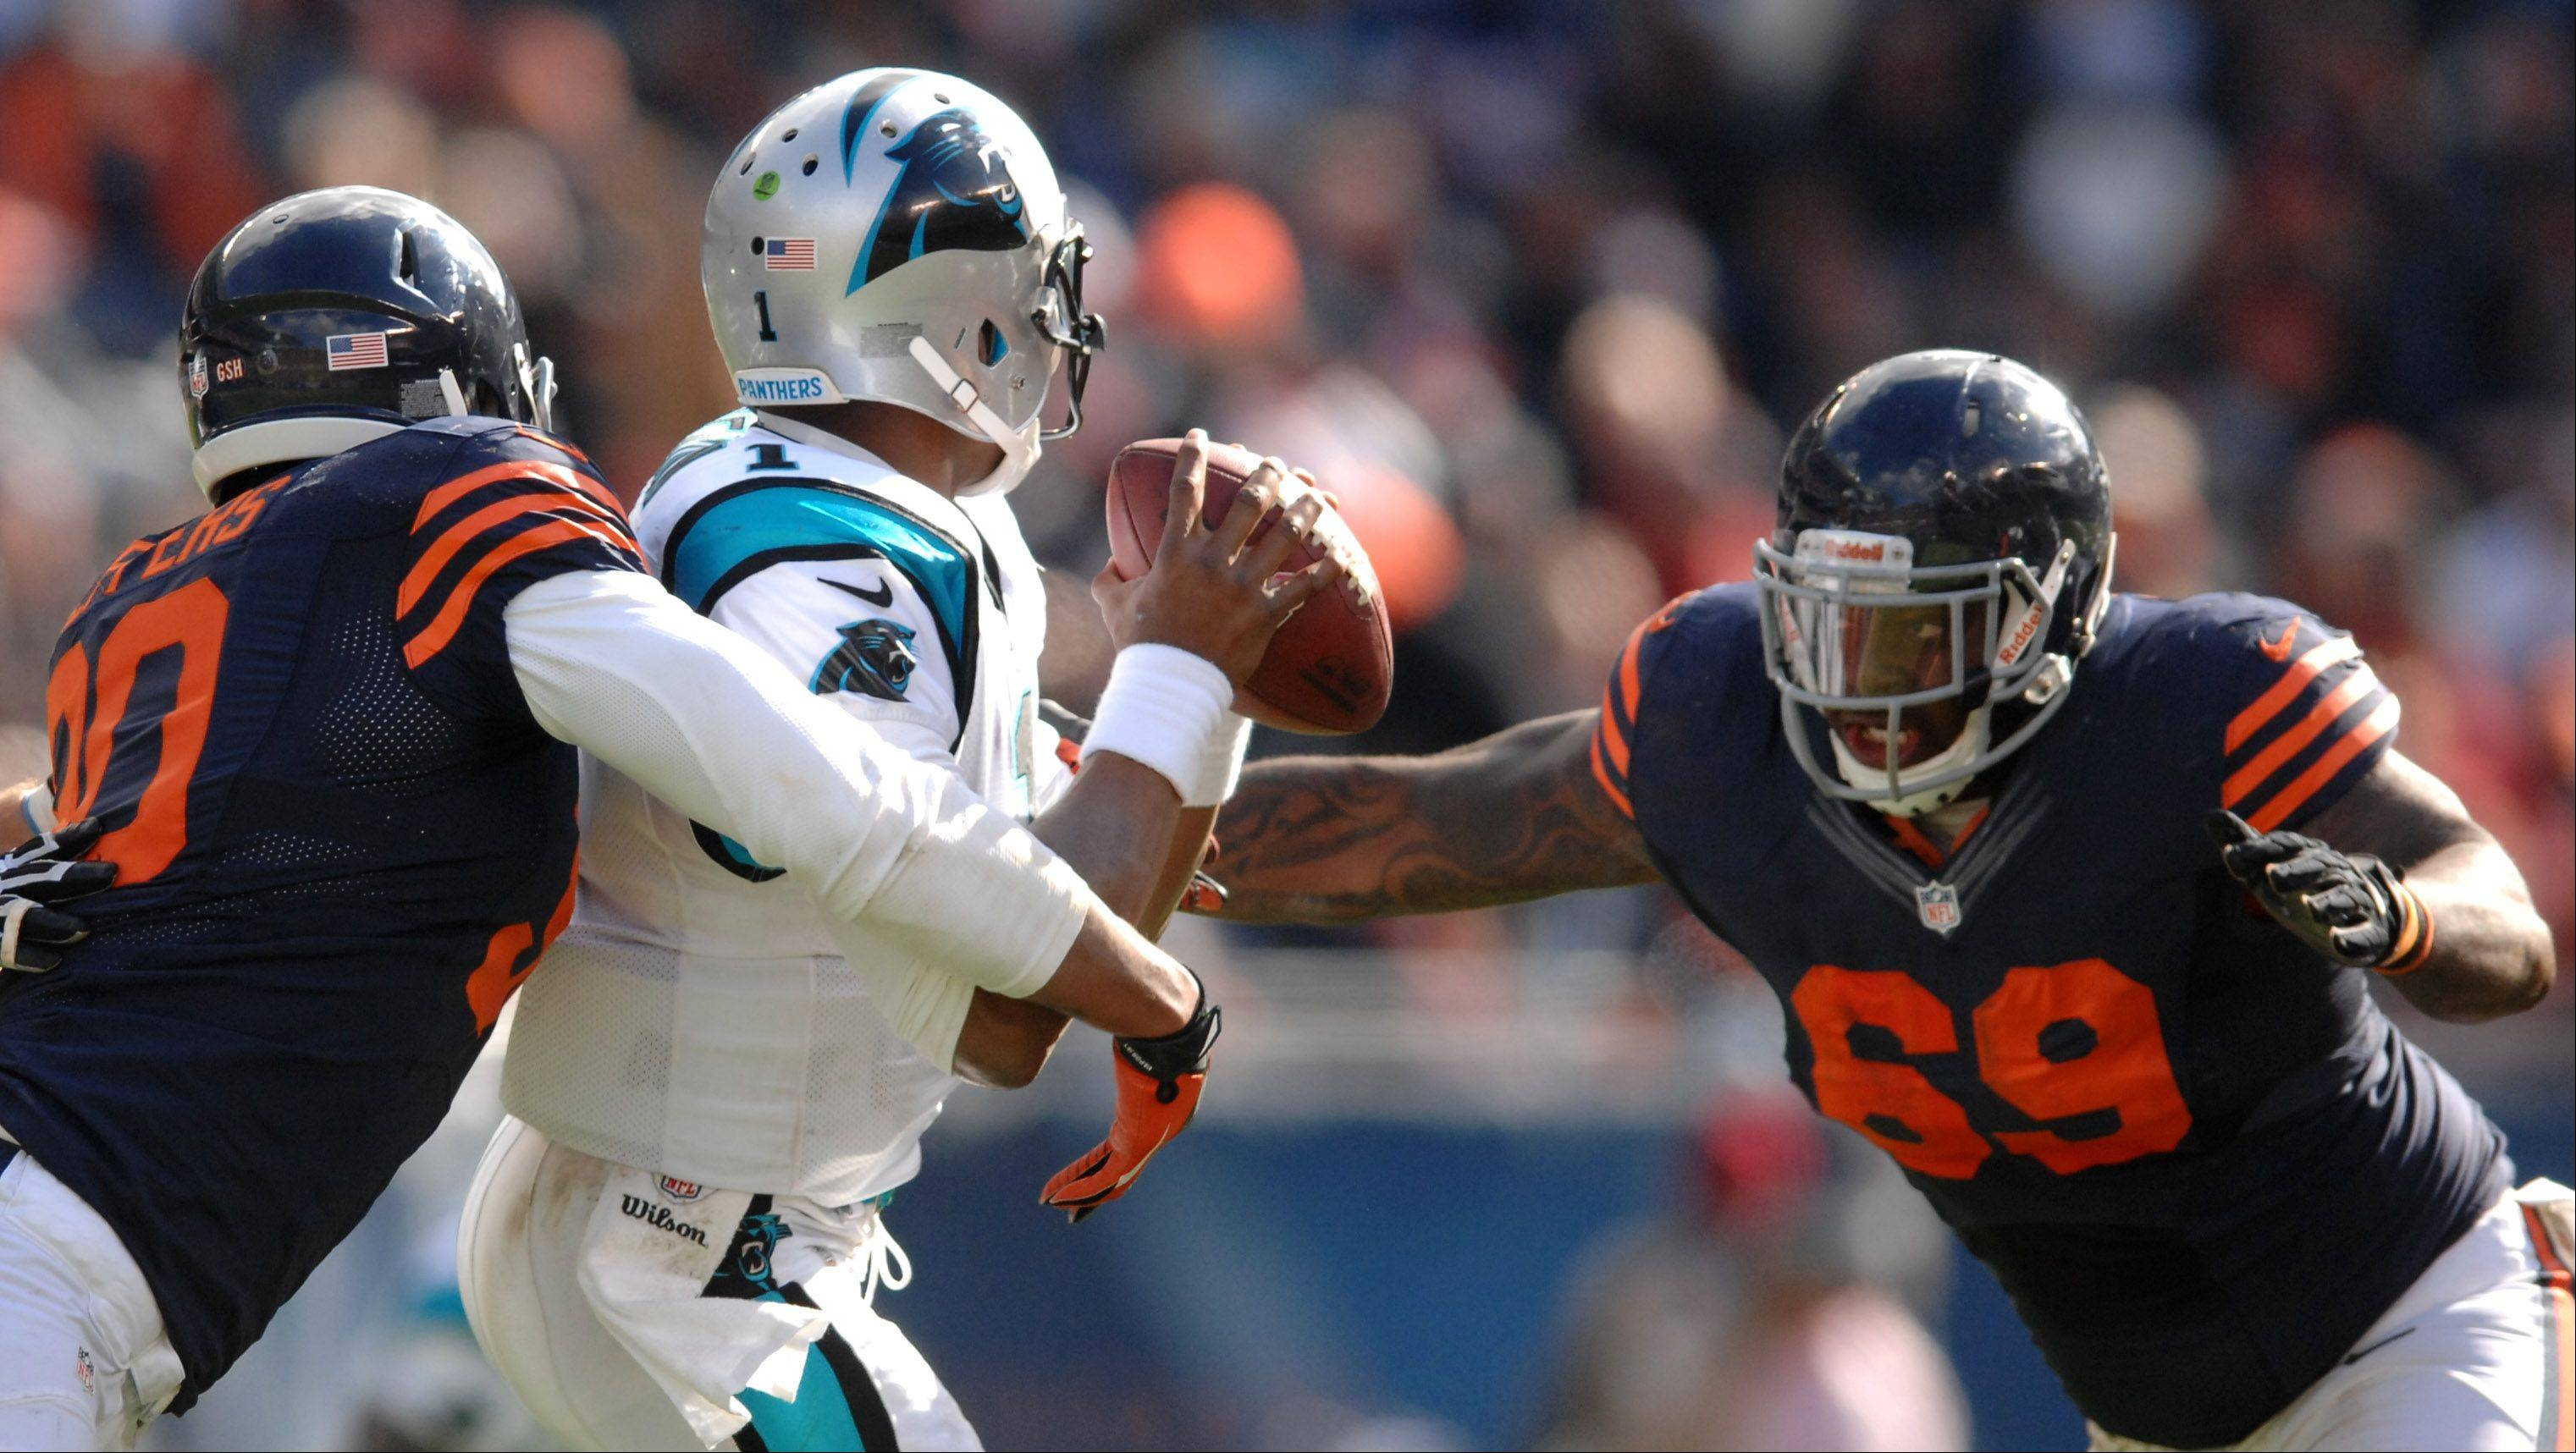 Chicago Bears defensive end Julius Peppers (90) and defensive tackle Henry Melton (69) converger for a sack of Carolina Panthers quarterback Cam Newton (1) during Sunday's game at Soldier Field in Chicago.